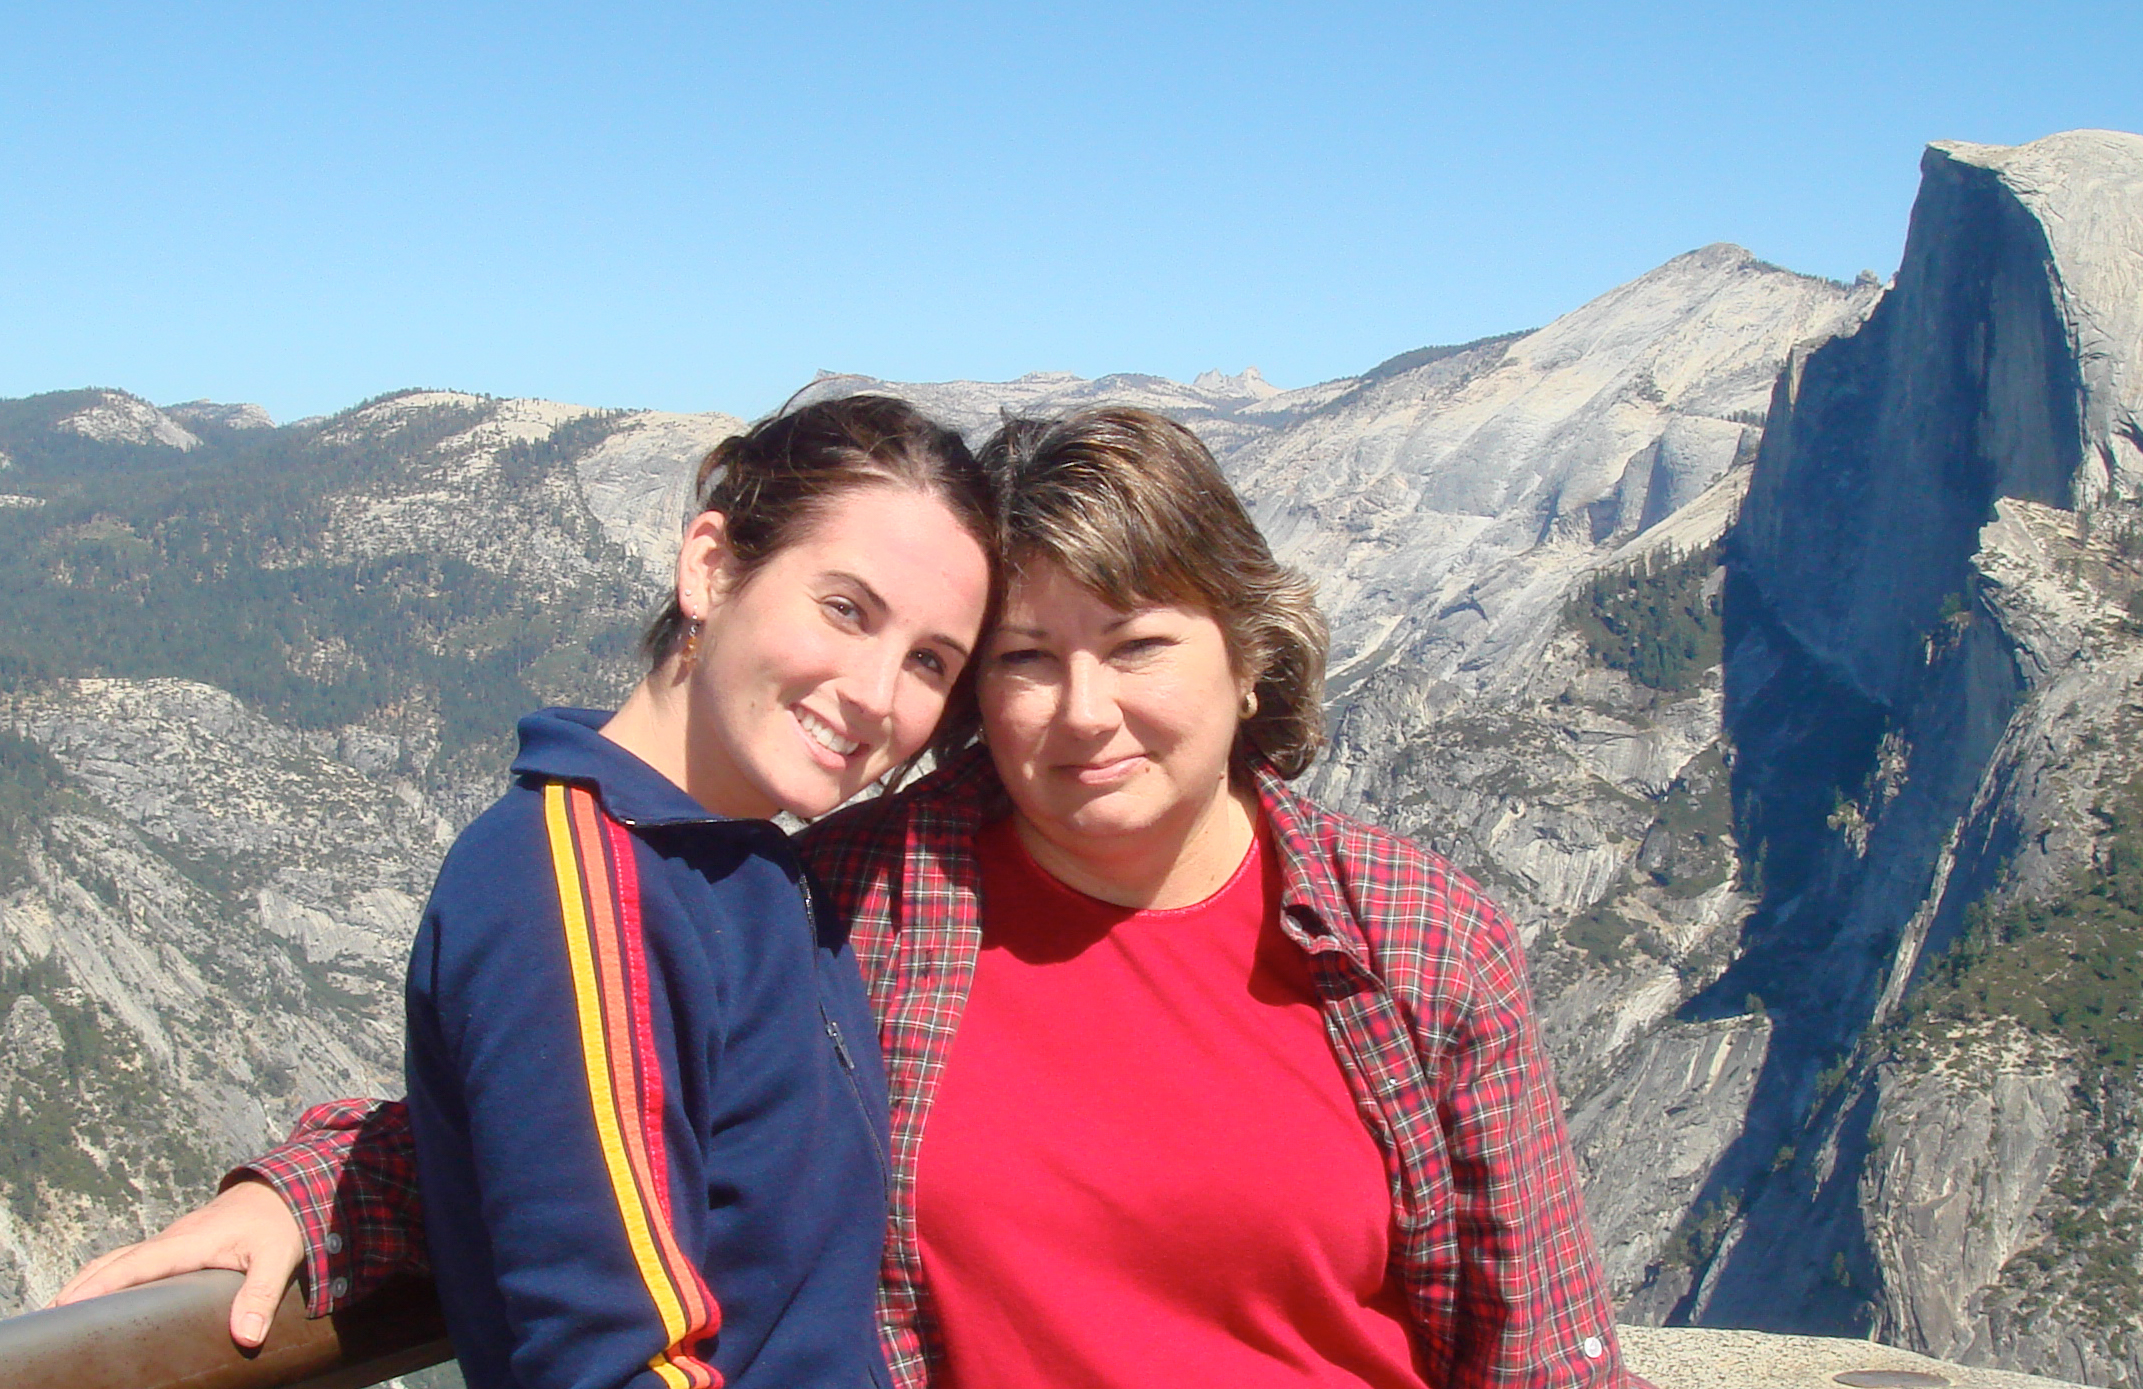 Author as a teen with her mother in the mountains